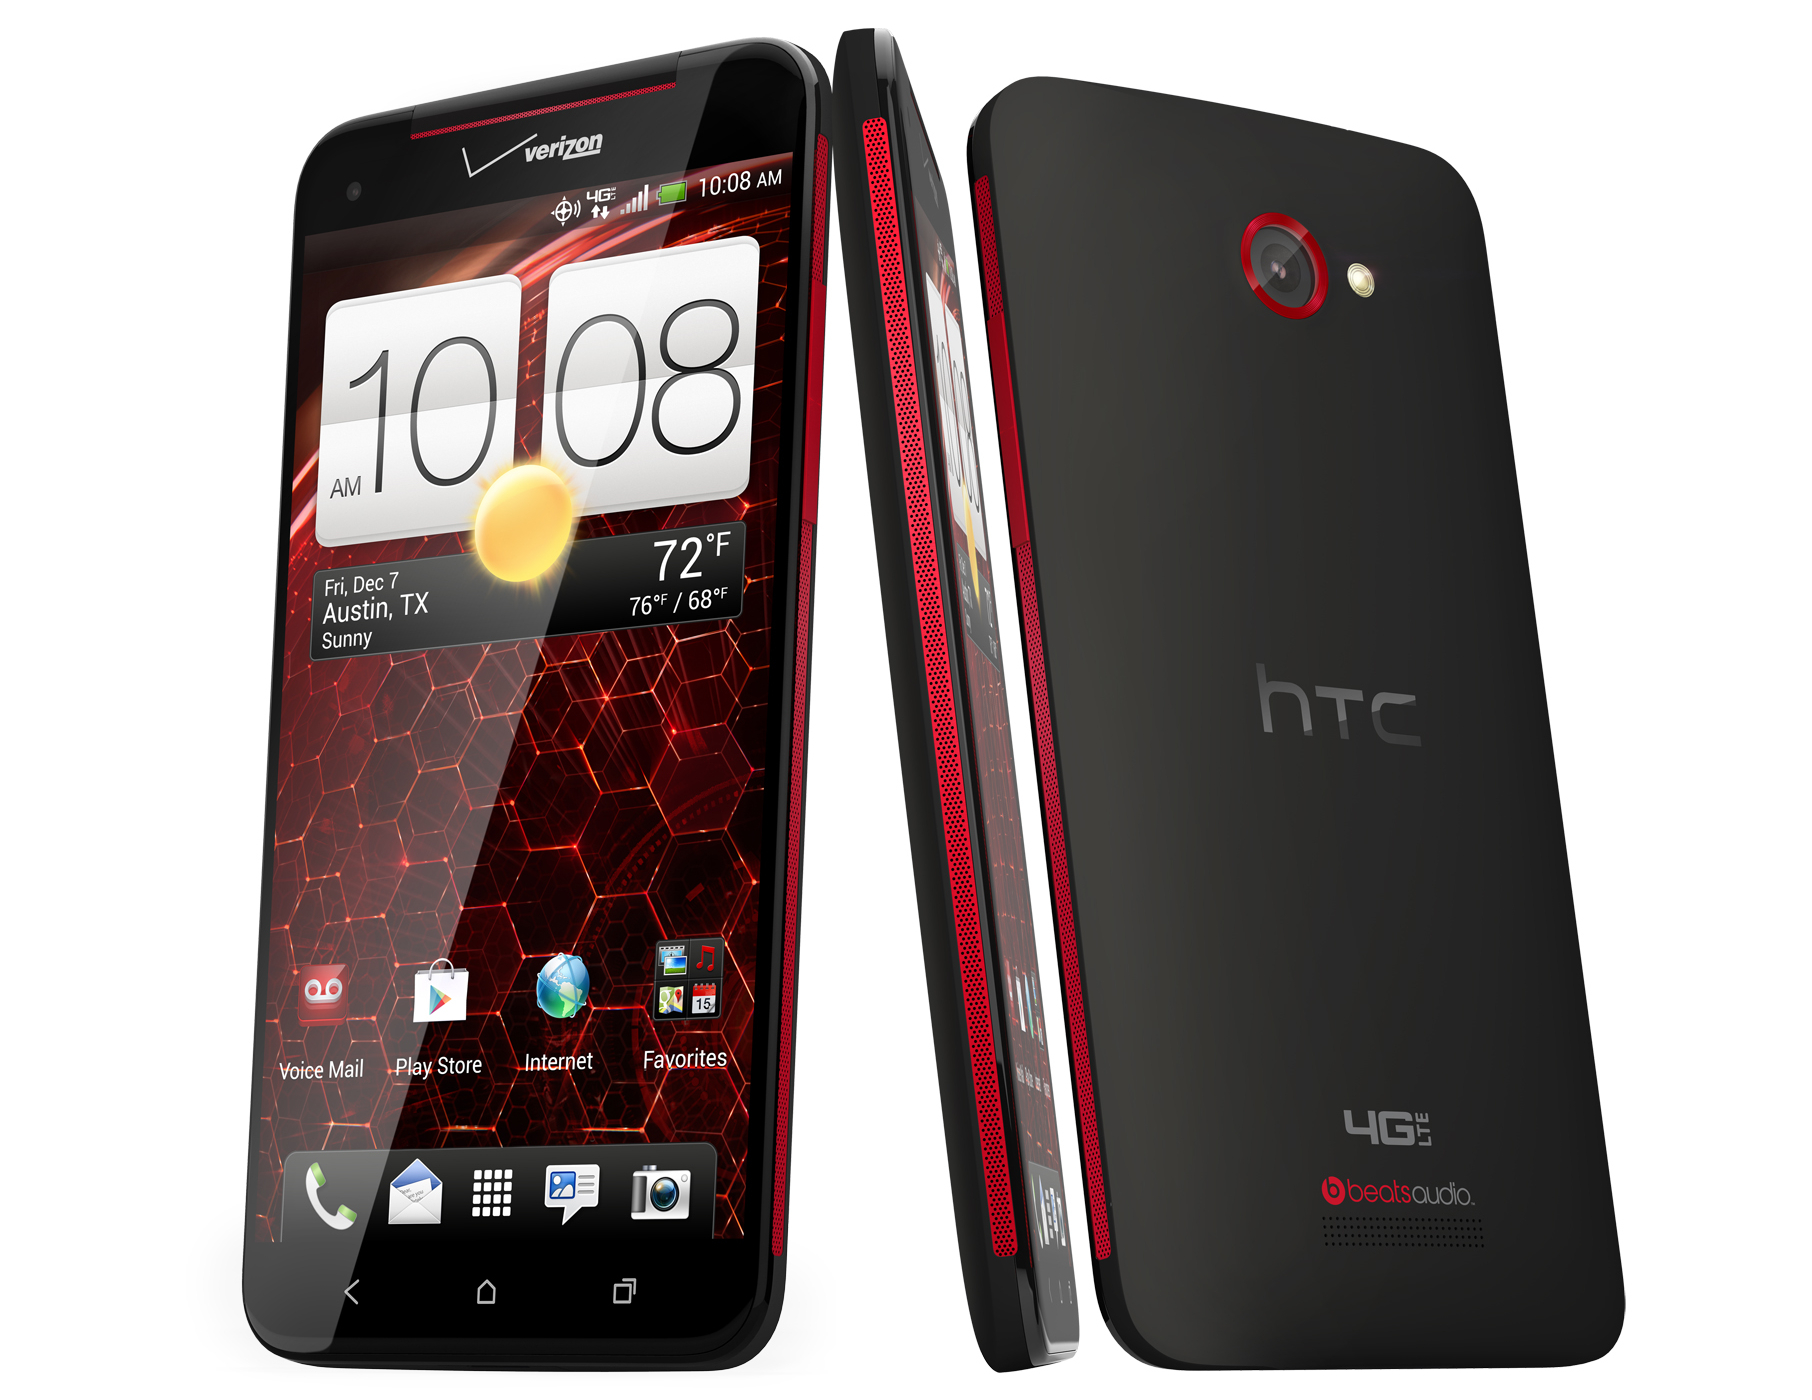 DROID DNA by HTC